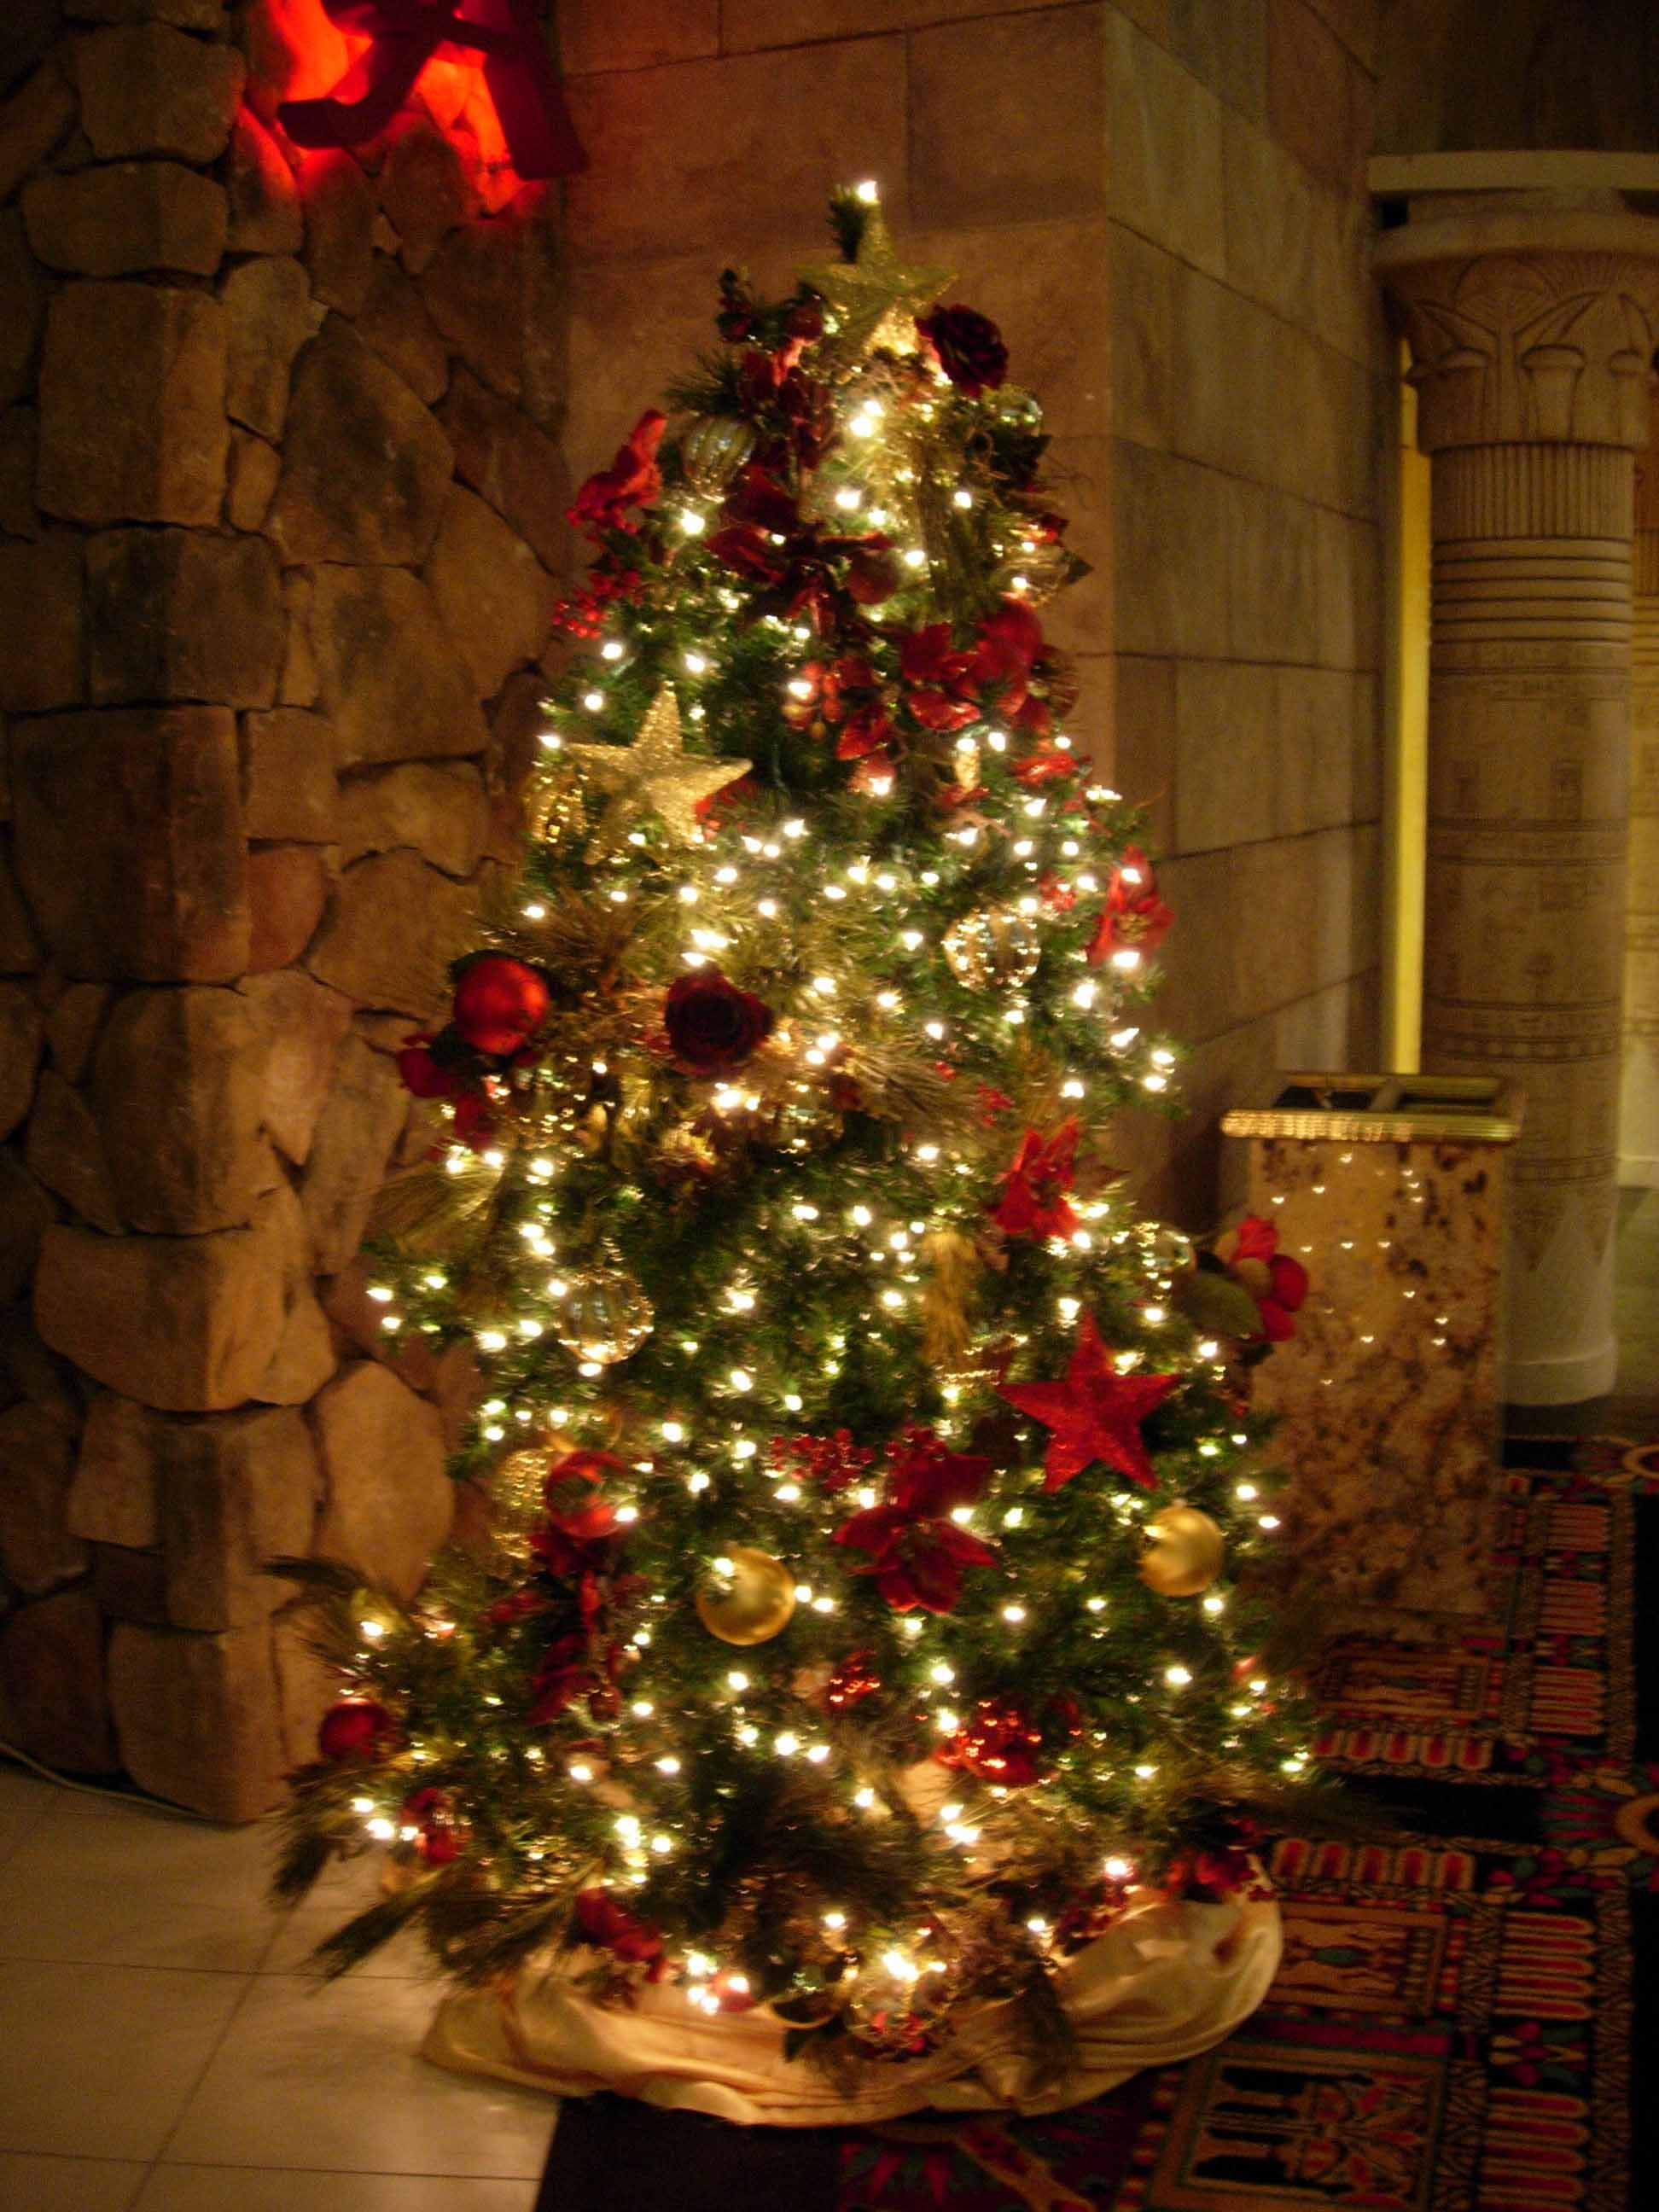 Christmas Decorators Luxury Christmas Tree Pics 01 Of Christmas Decorators Best Of Christmas Decoration S